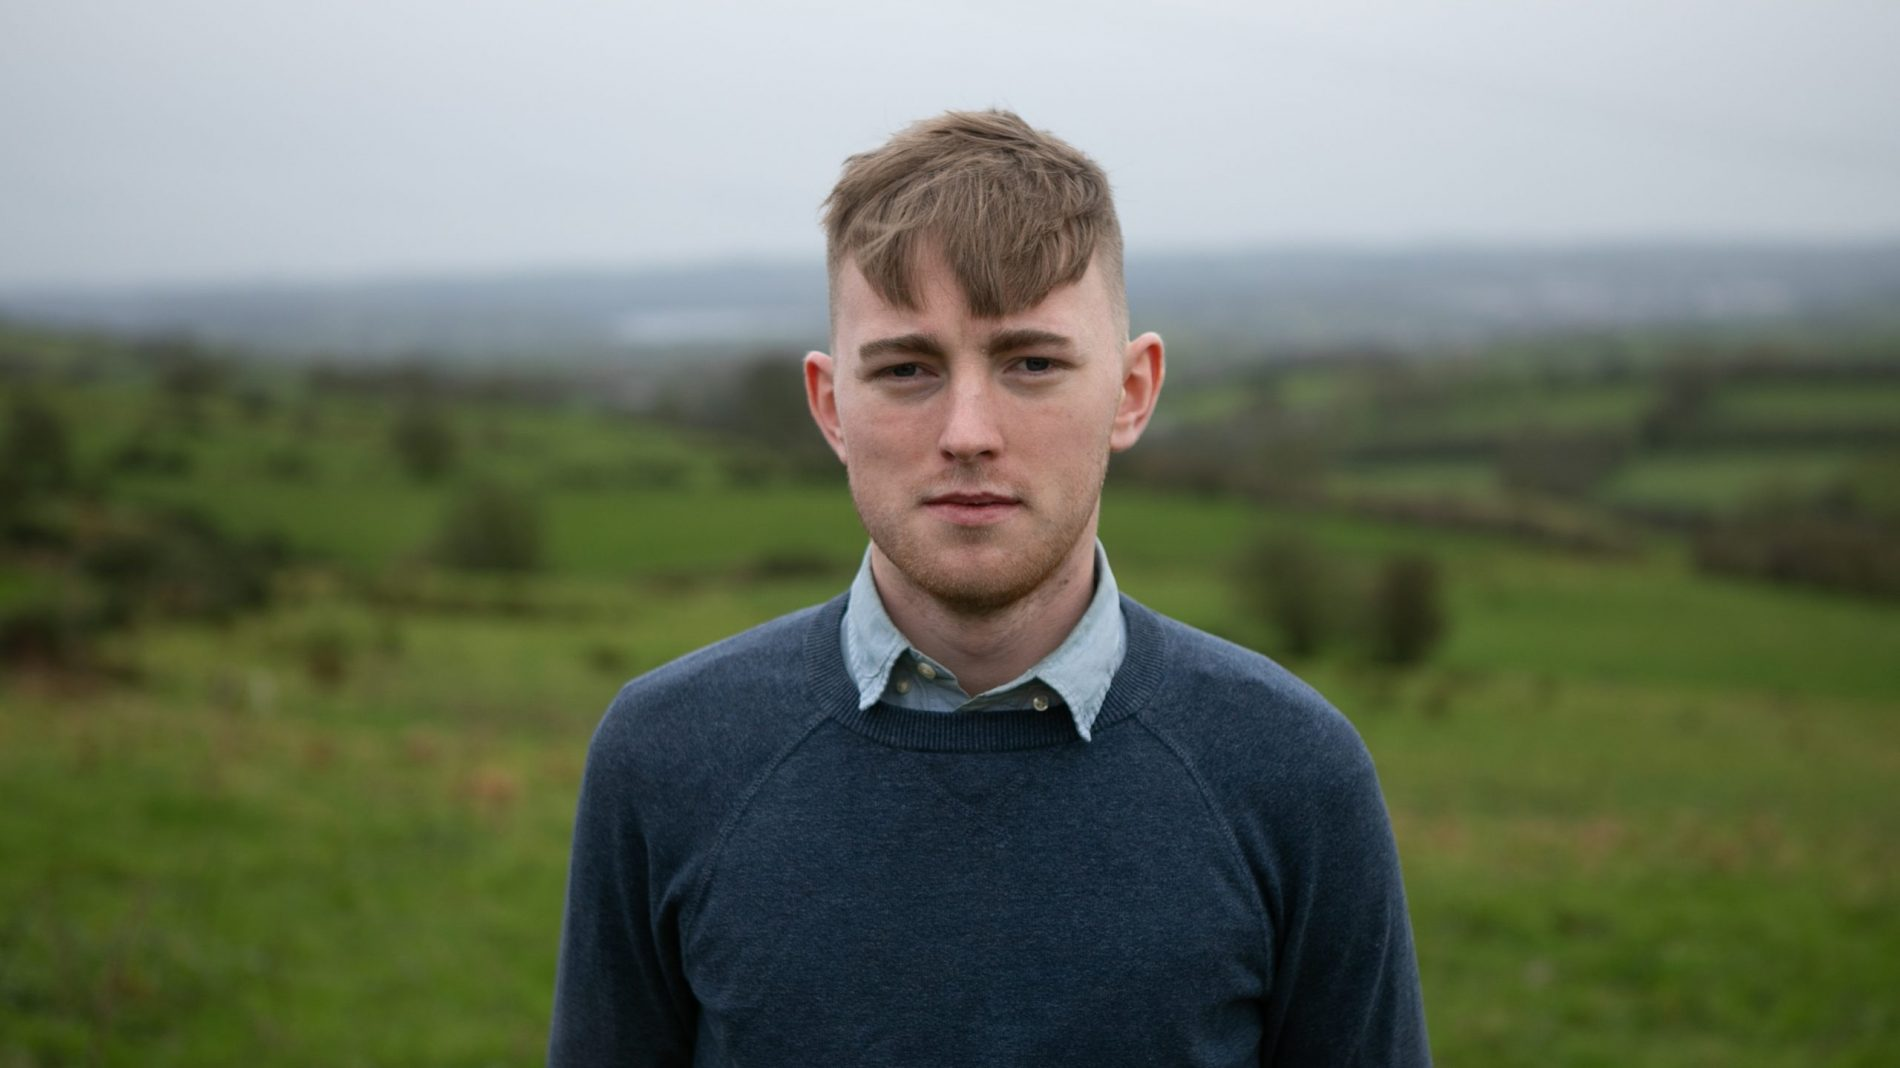 Green Party/ Comhaontas Glas general election candidate Tate Donnelly